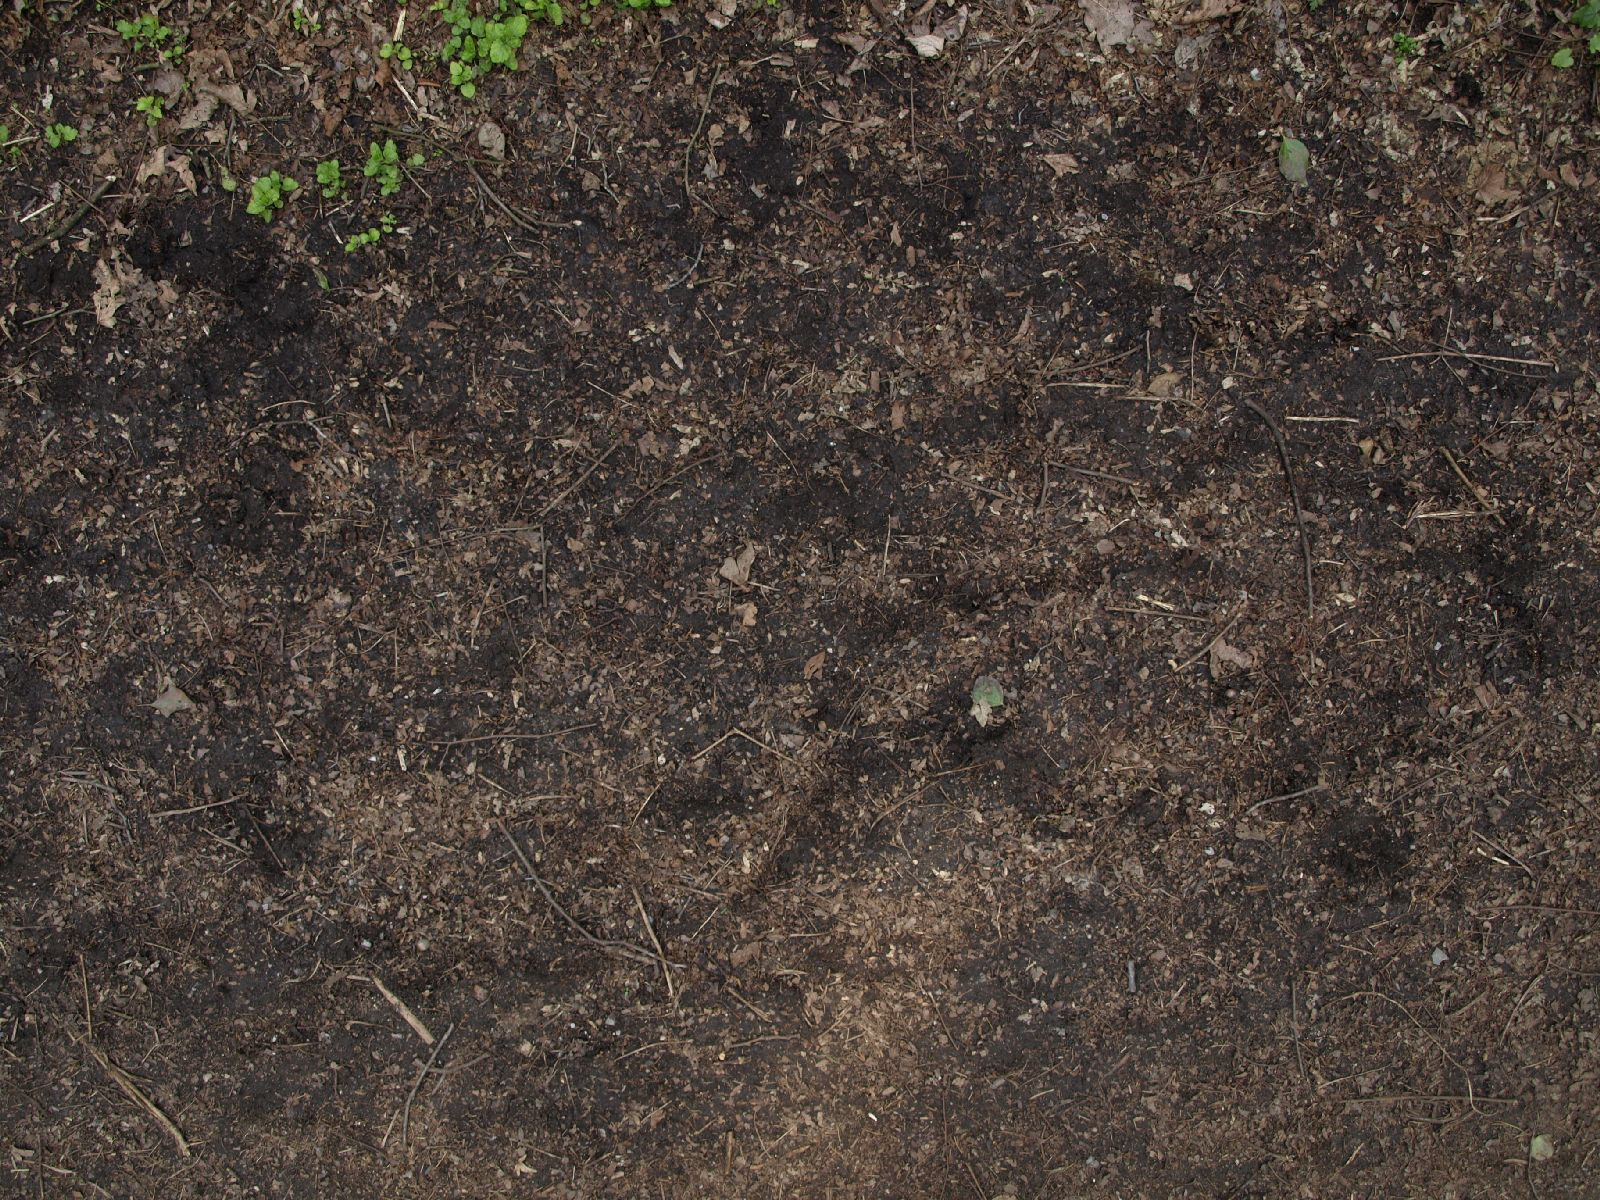 Ground-Nature_Texture_A_P4231733